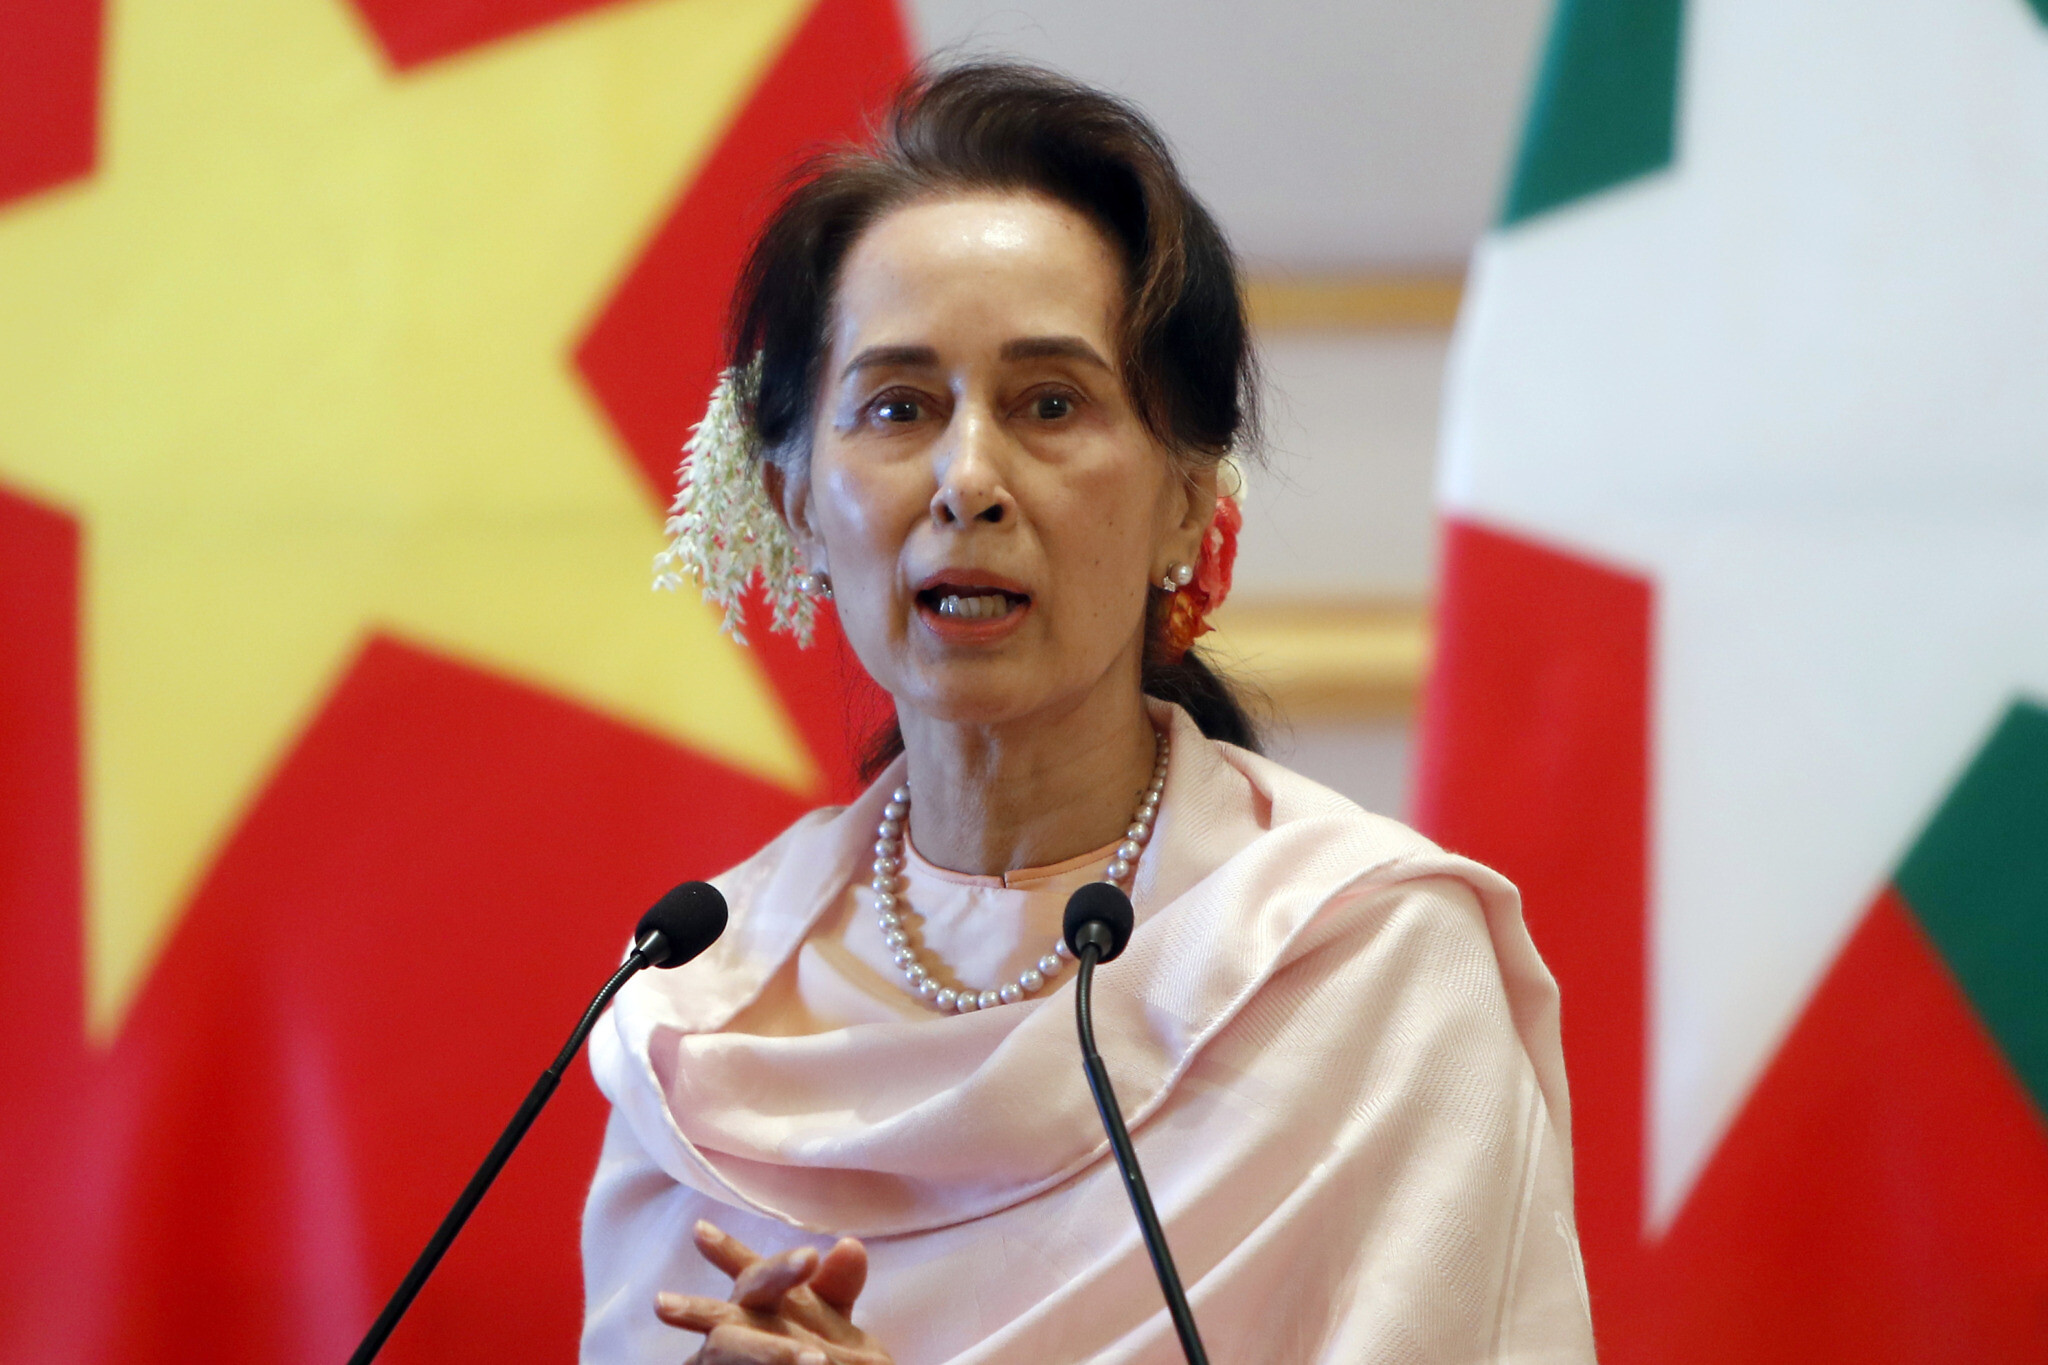 Myanmar's military seizes power in coup after detaining leader Aung San Suu Kyi and ruling party politicians